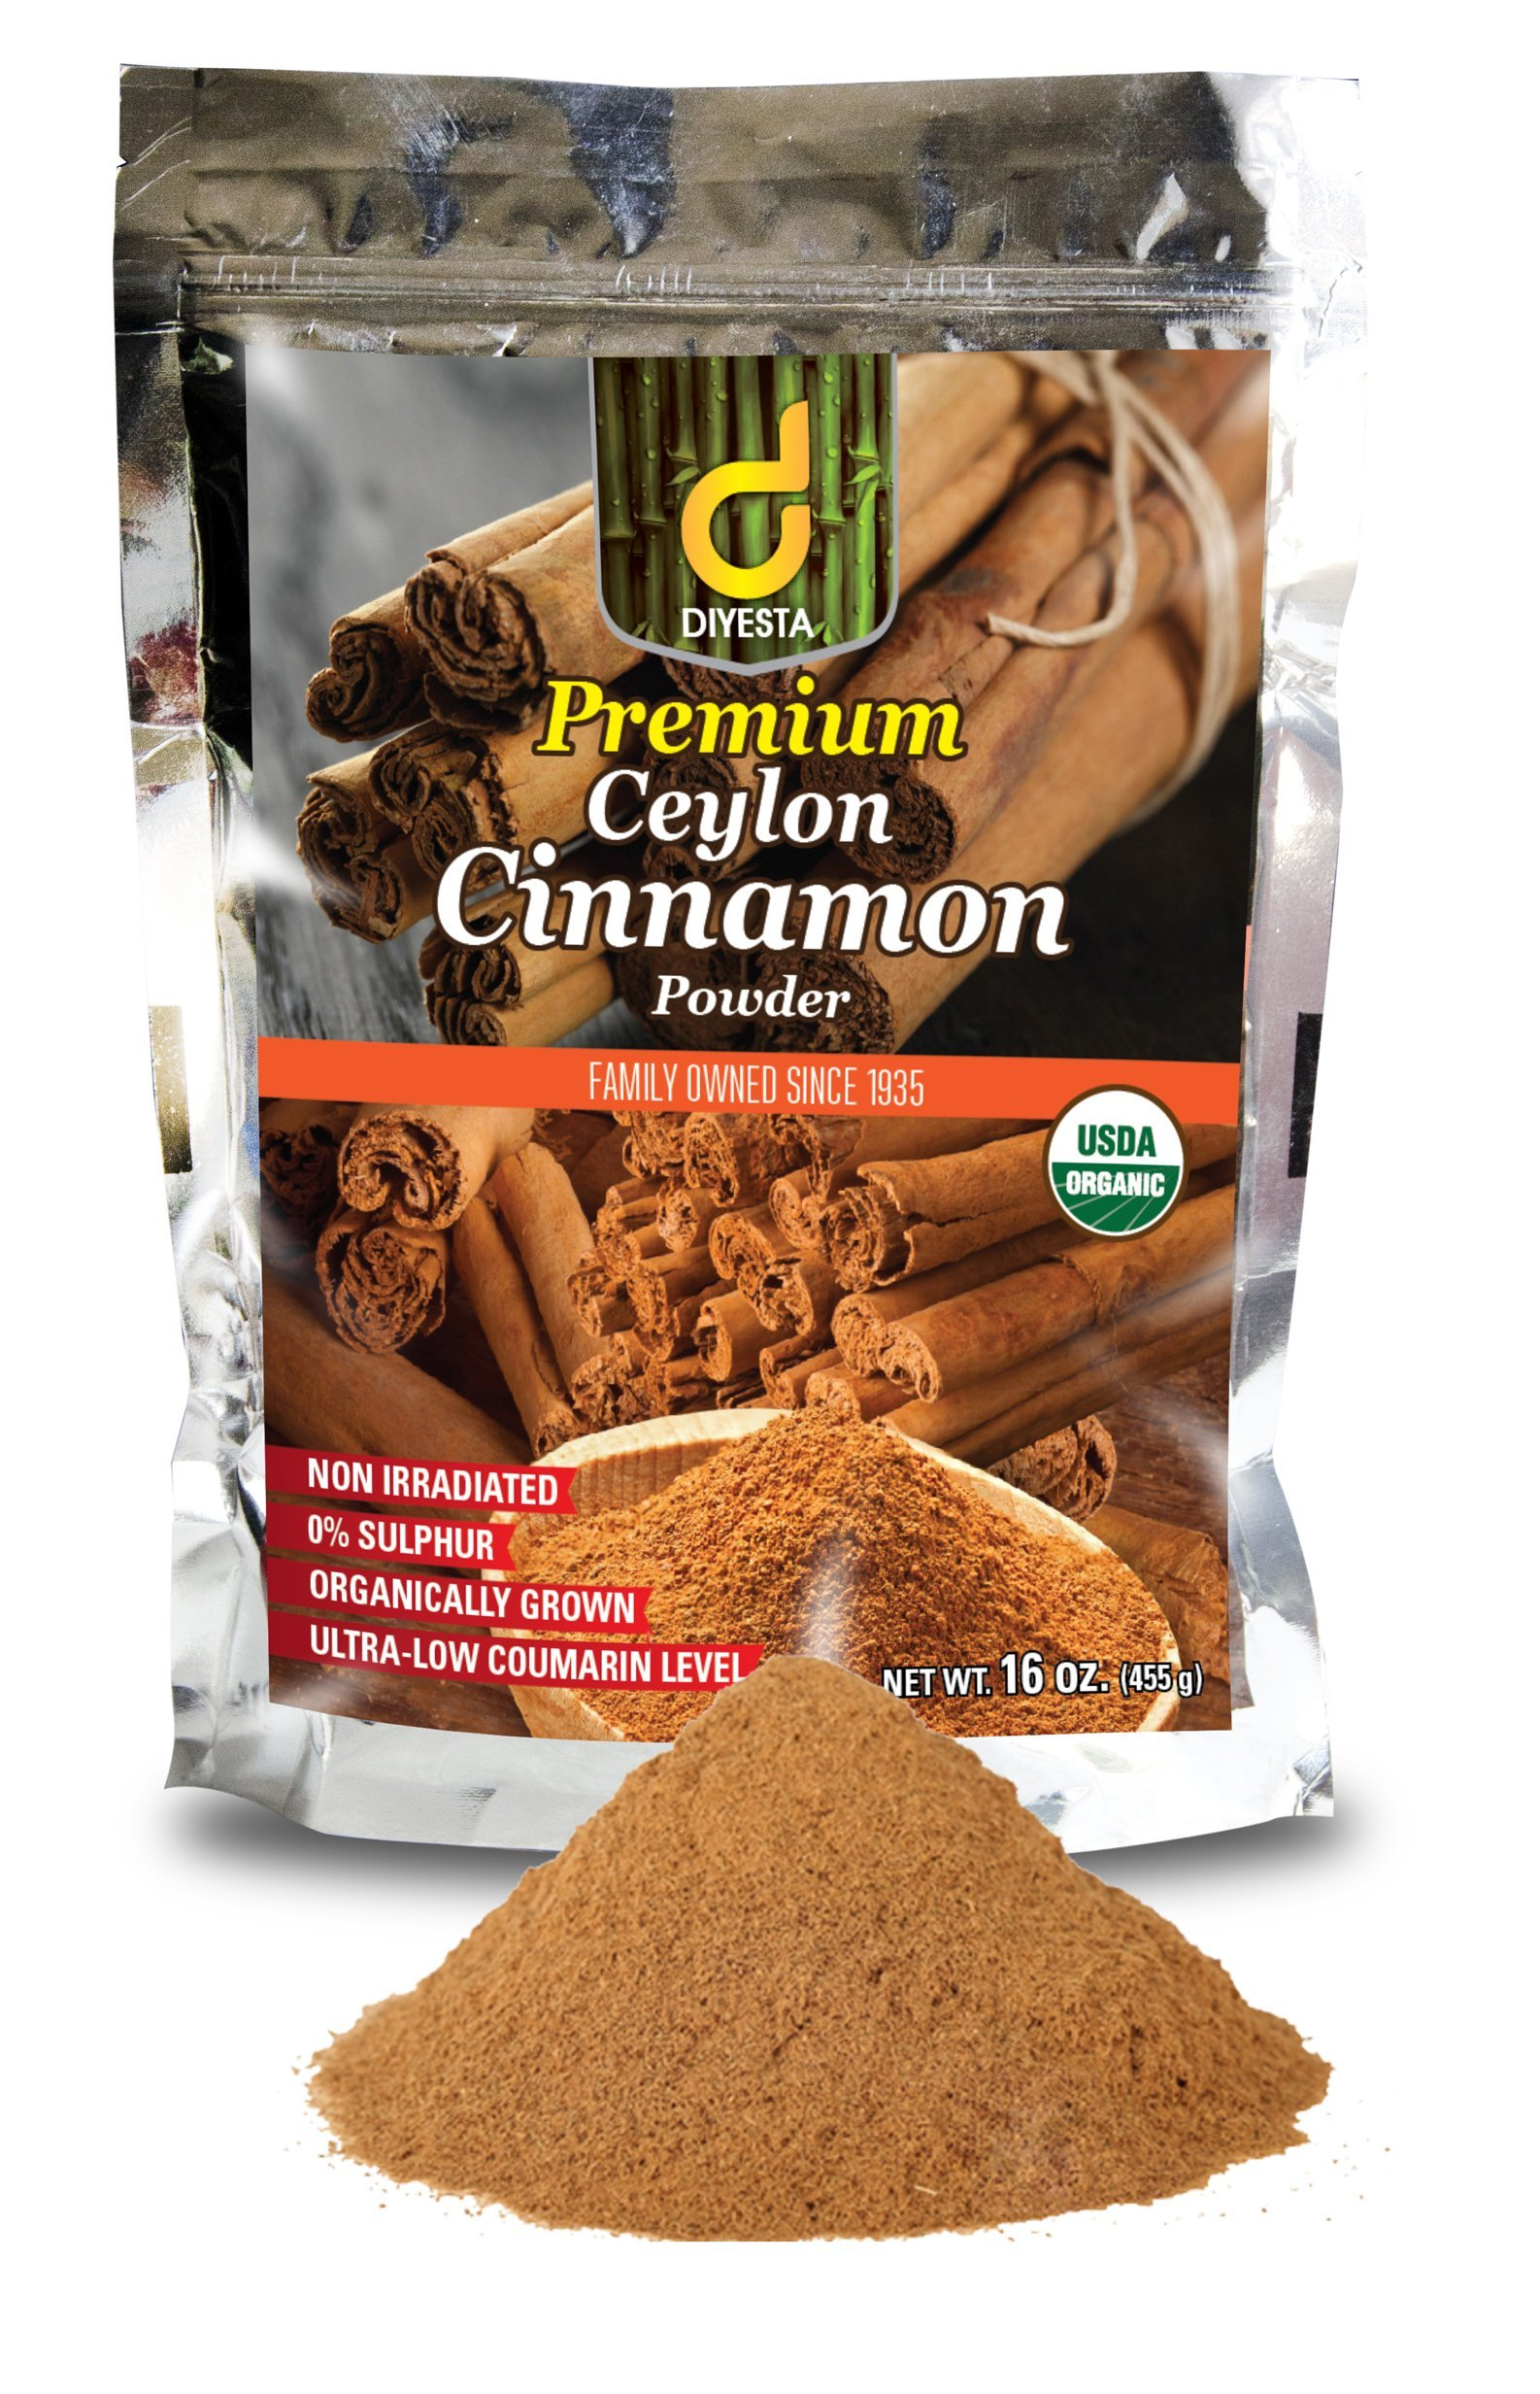 Organic Ceylon Cinnamon Powder - Family Owned Since 1935 - 1 Lb. in a Handy Re-sealable Pouch by Diyesta